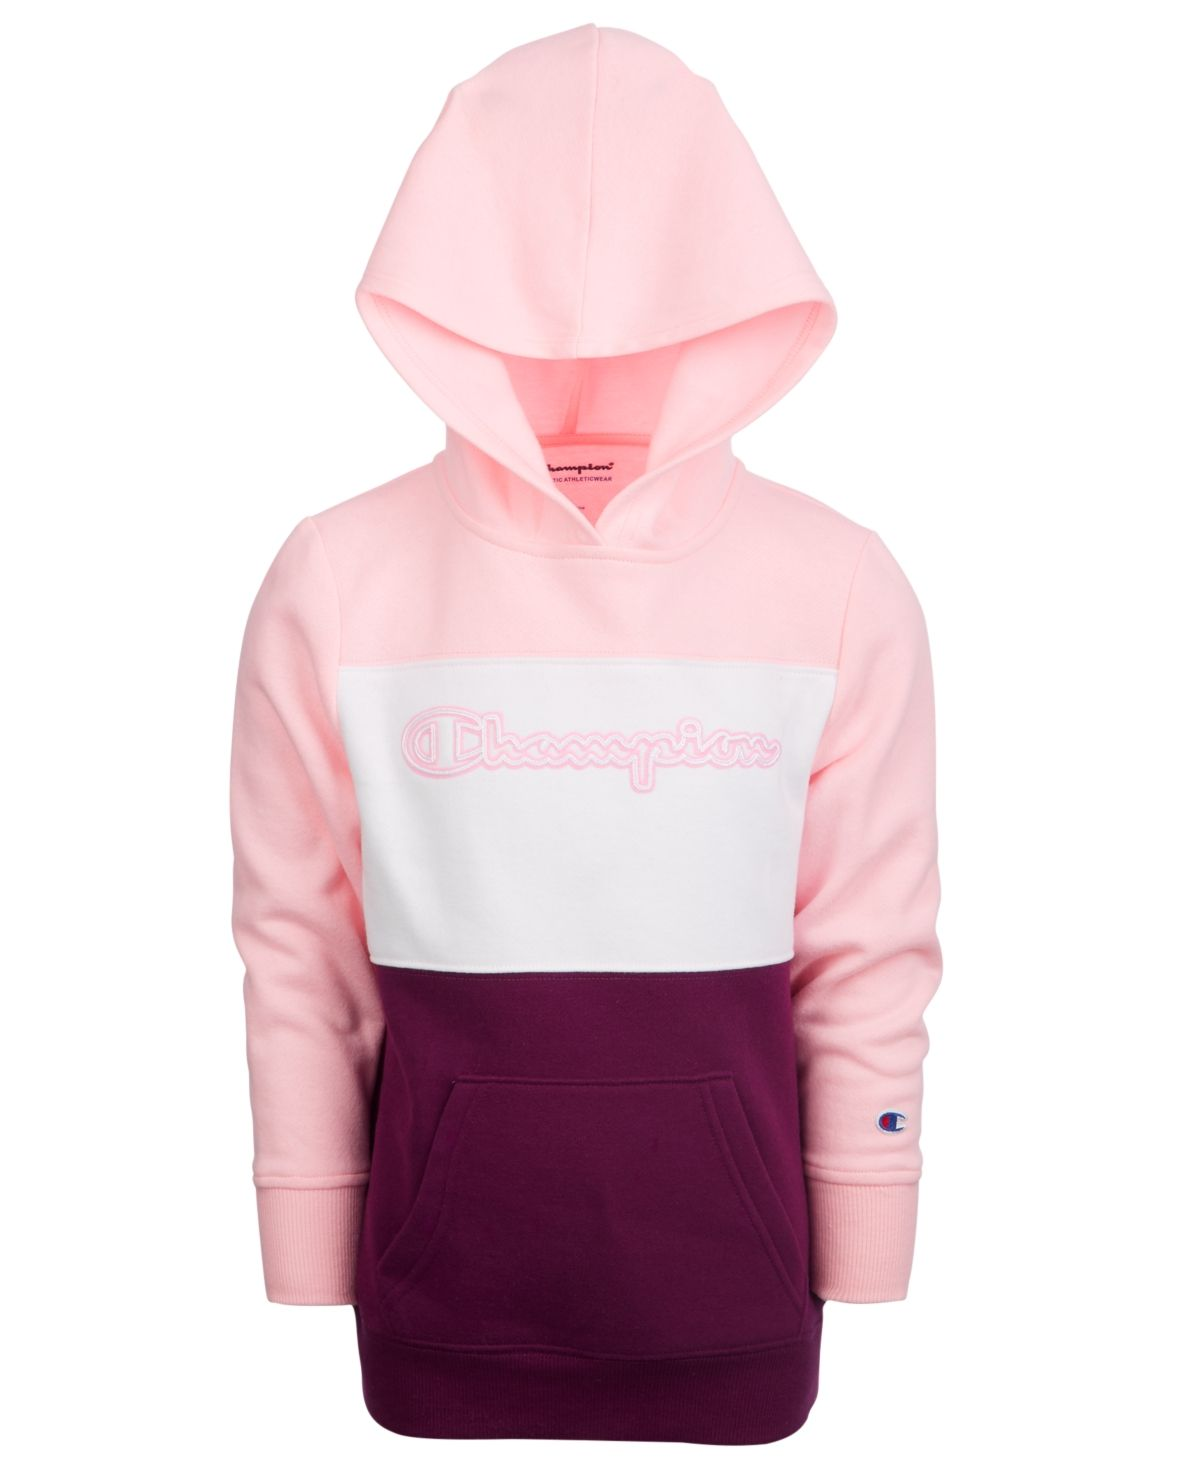 Champion Toddler Girls Colorblocked Hoodie Pink Candy Big Clothes Pink Candy Hoodies [ 1467 x 1200 Pixel ]